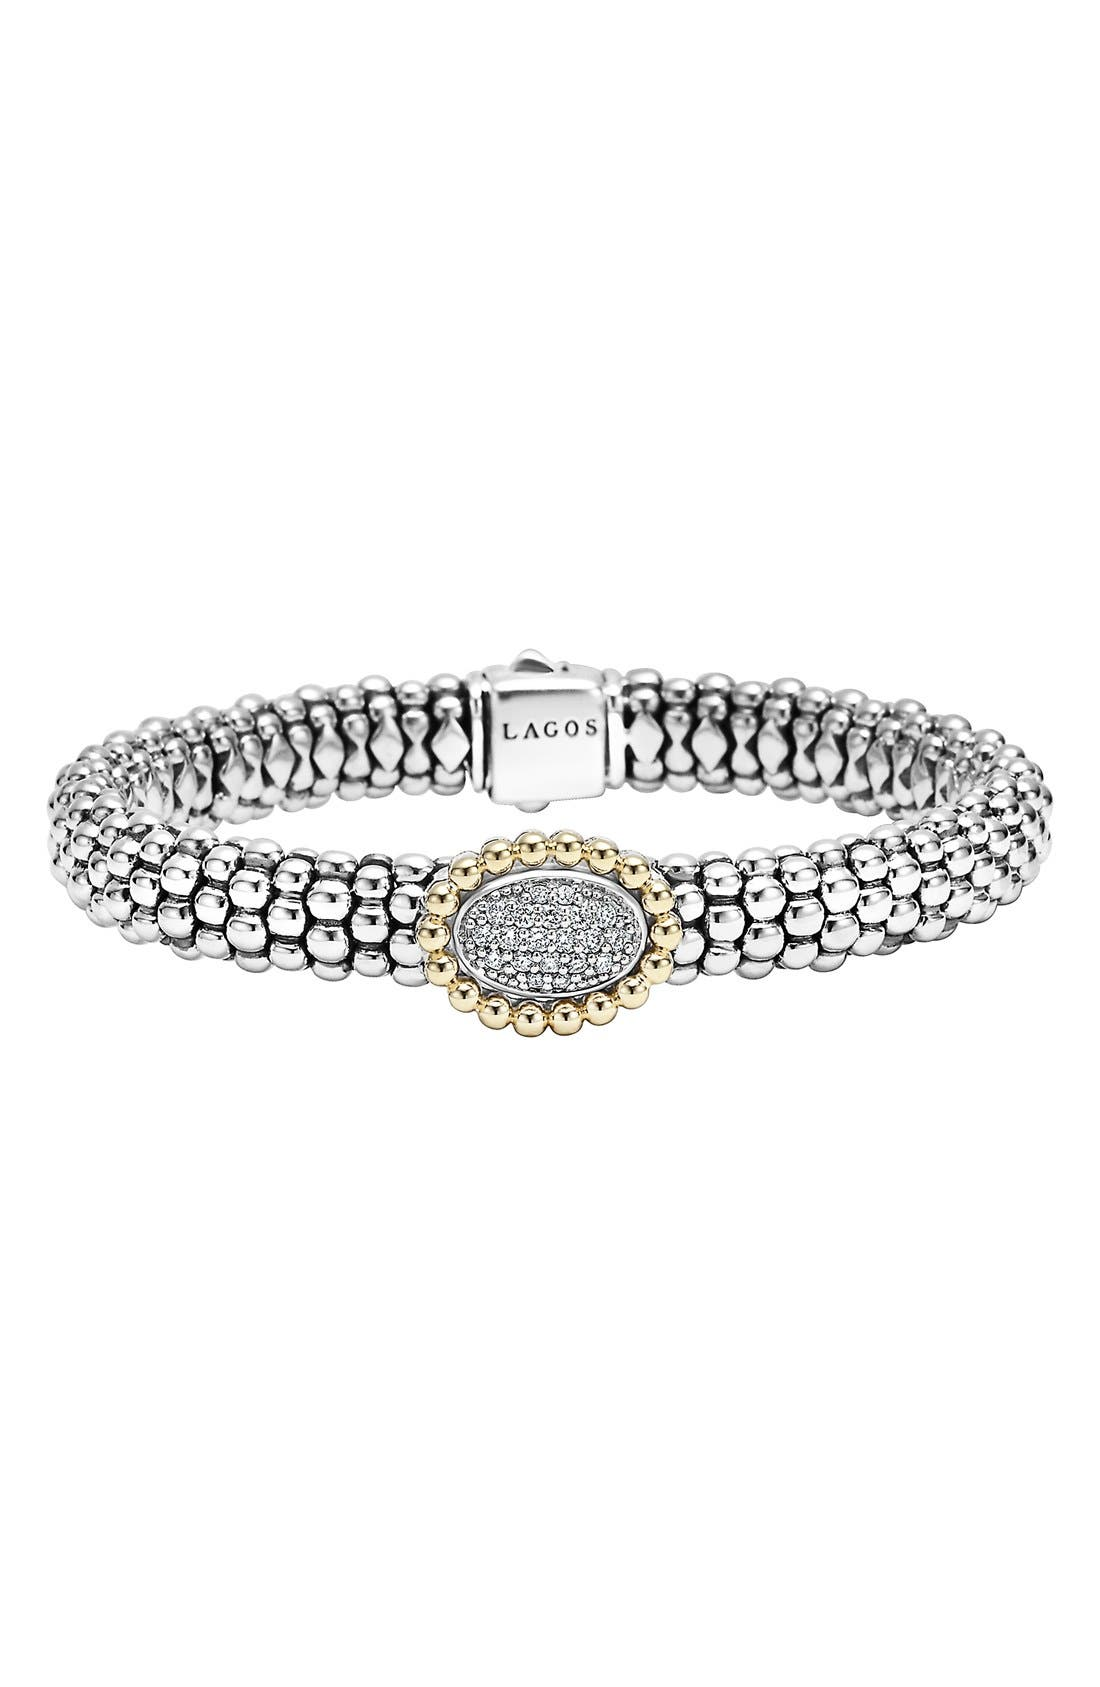 'Caviar' Diamond Bracelet,                             Main thumbnail 1, color,                             040